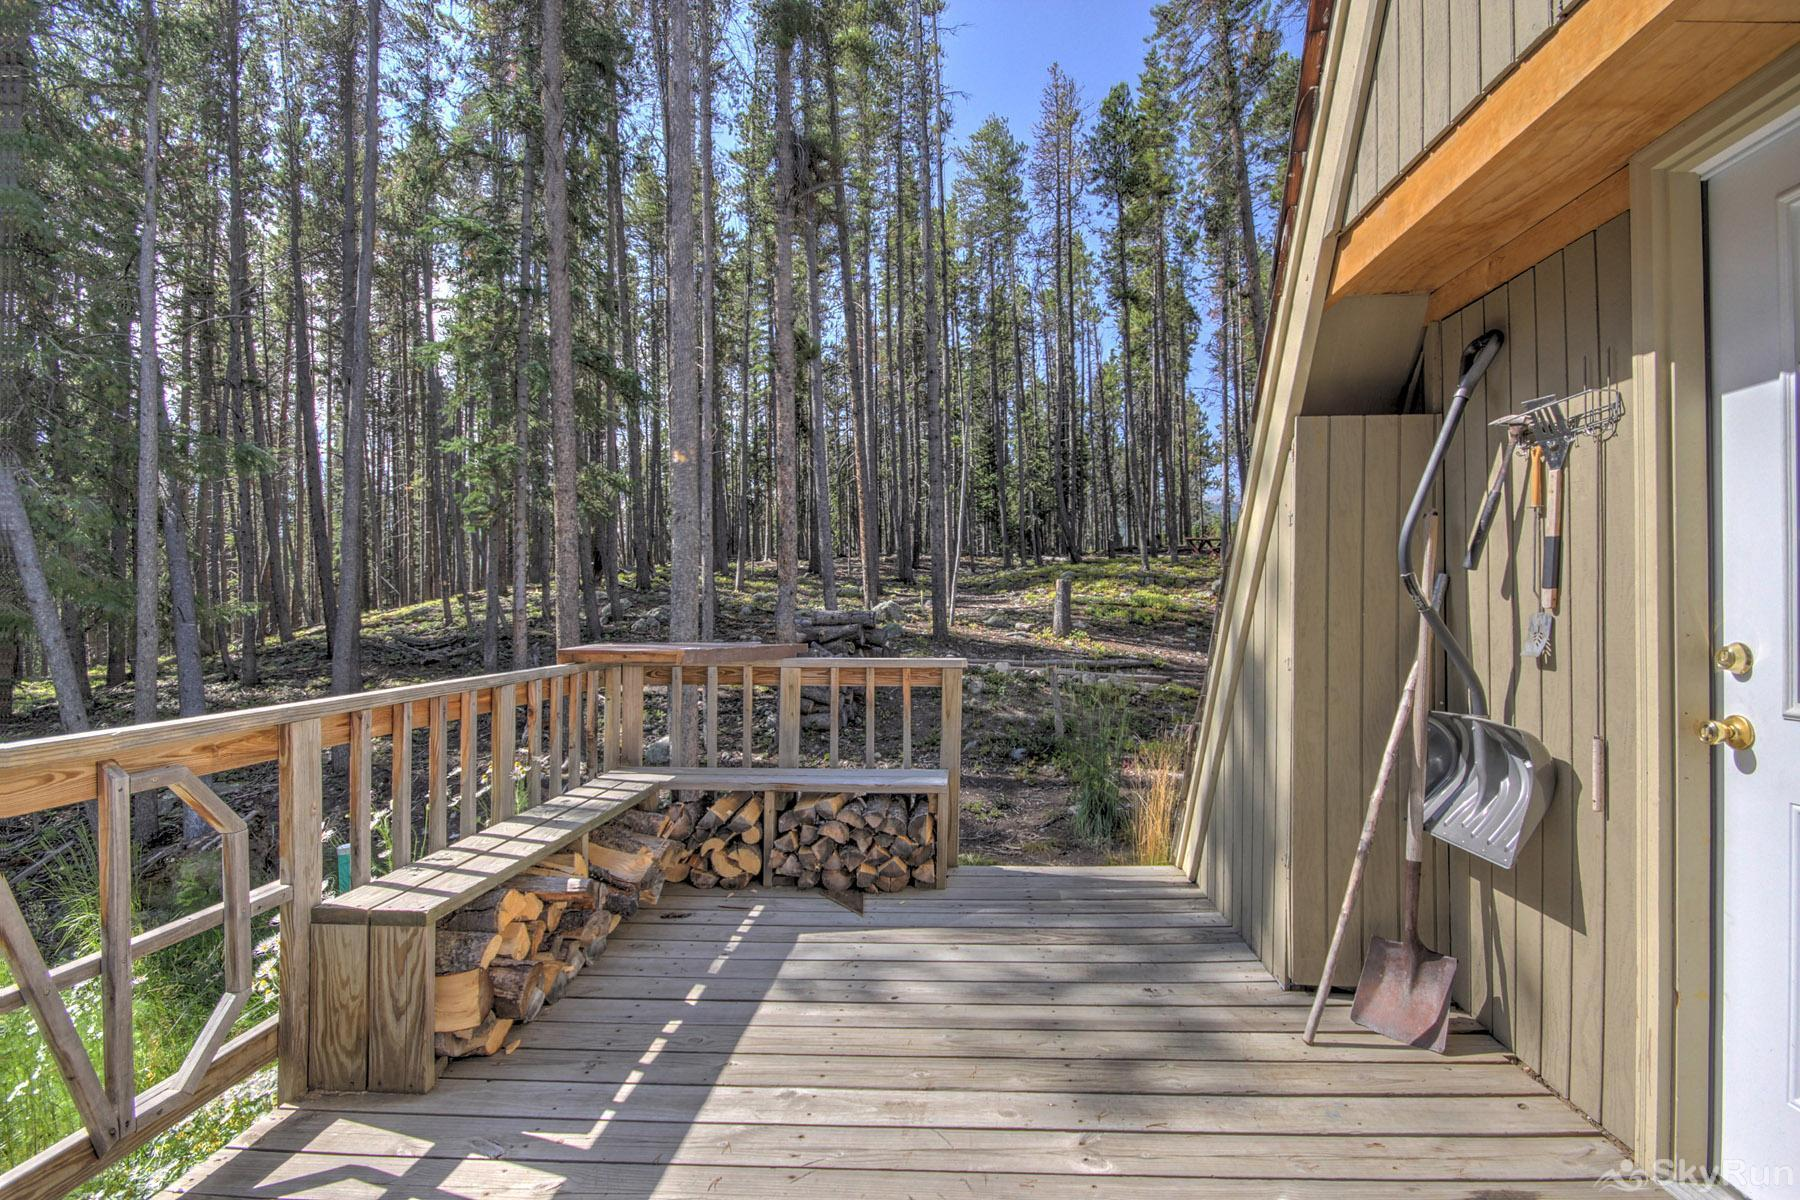 Spruce Creek Lodge Deck